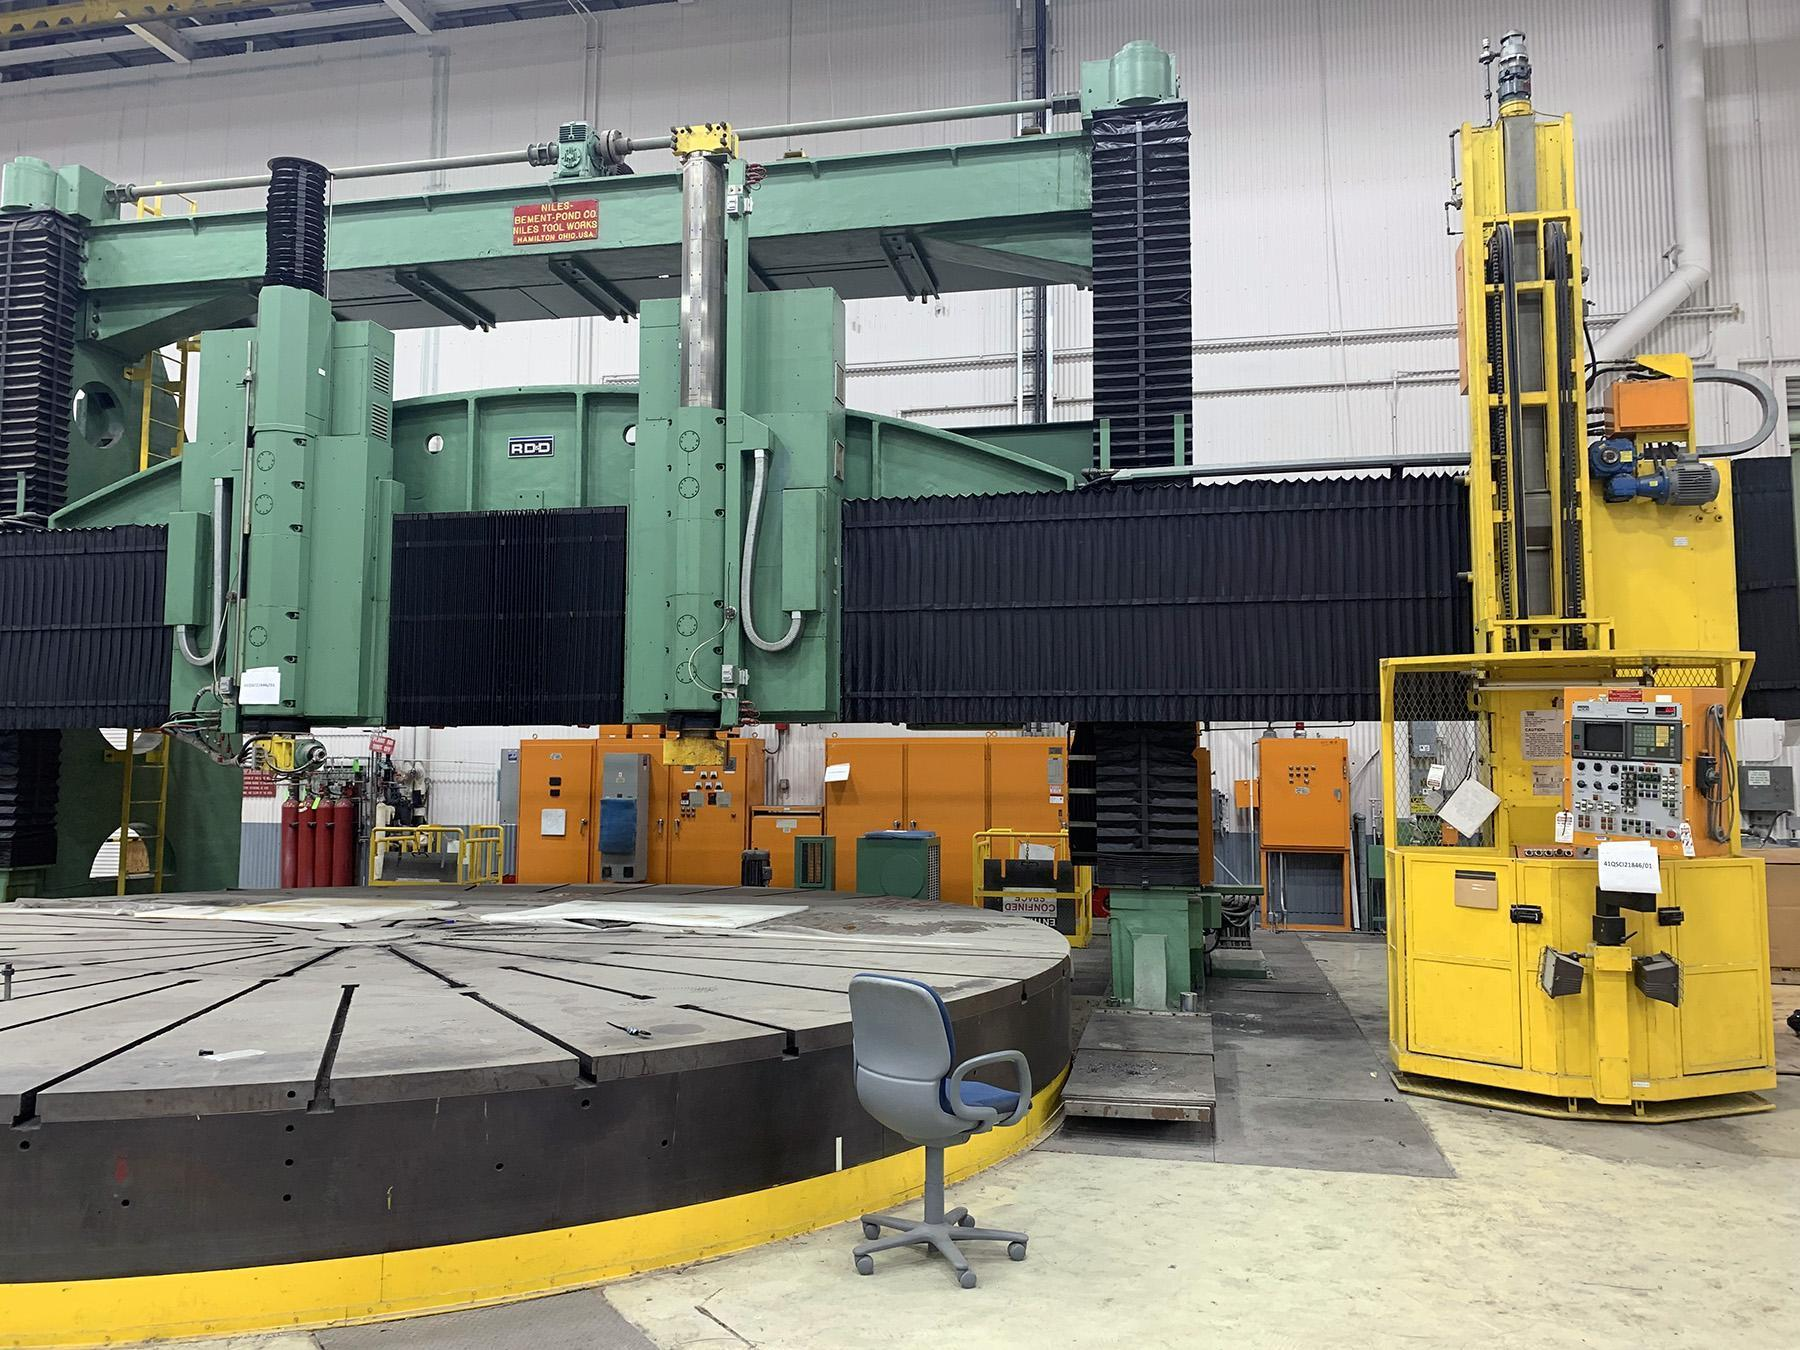 """USED, 504"""" (42') DORRIES SCHARMANN (RD&D) CNC VERTICAL BORING MILL WITH LIVE TOOL"""